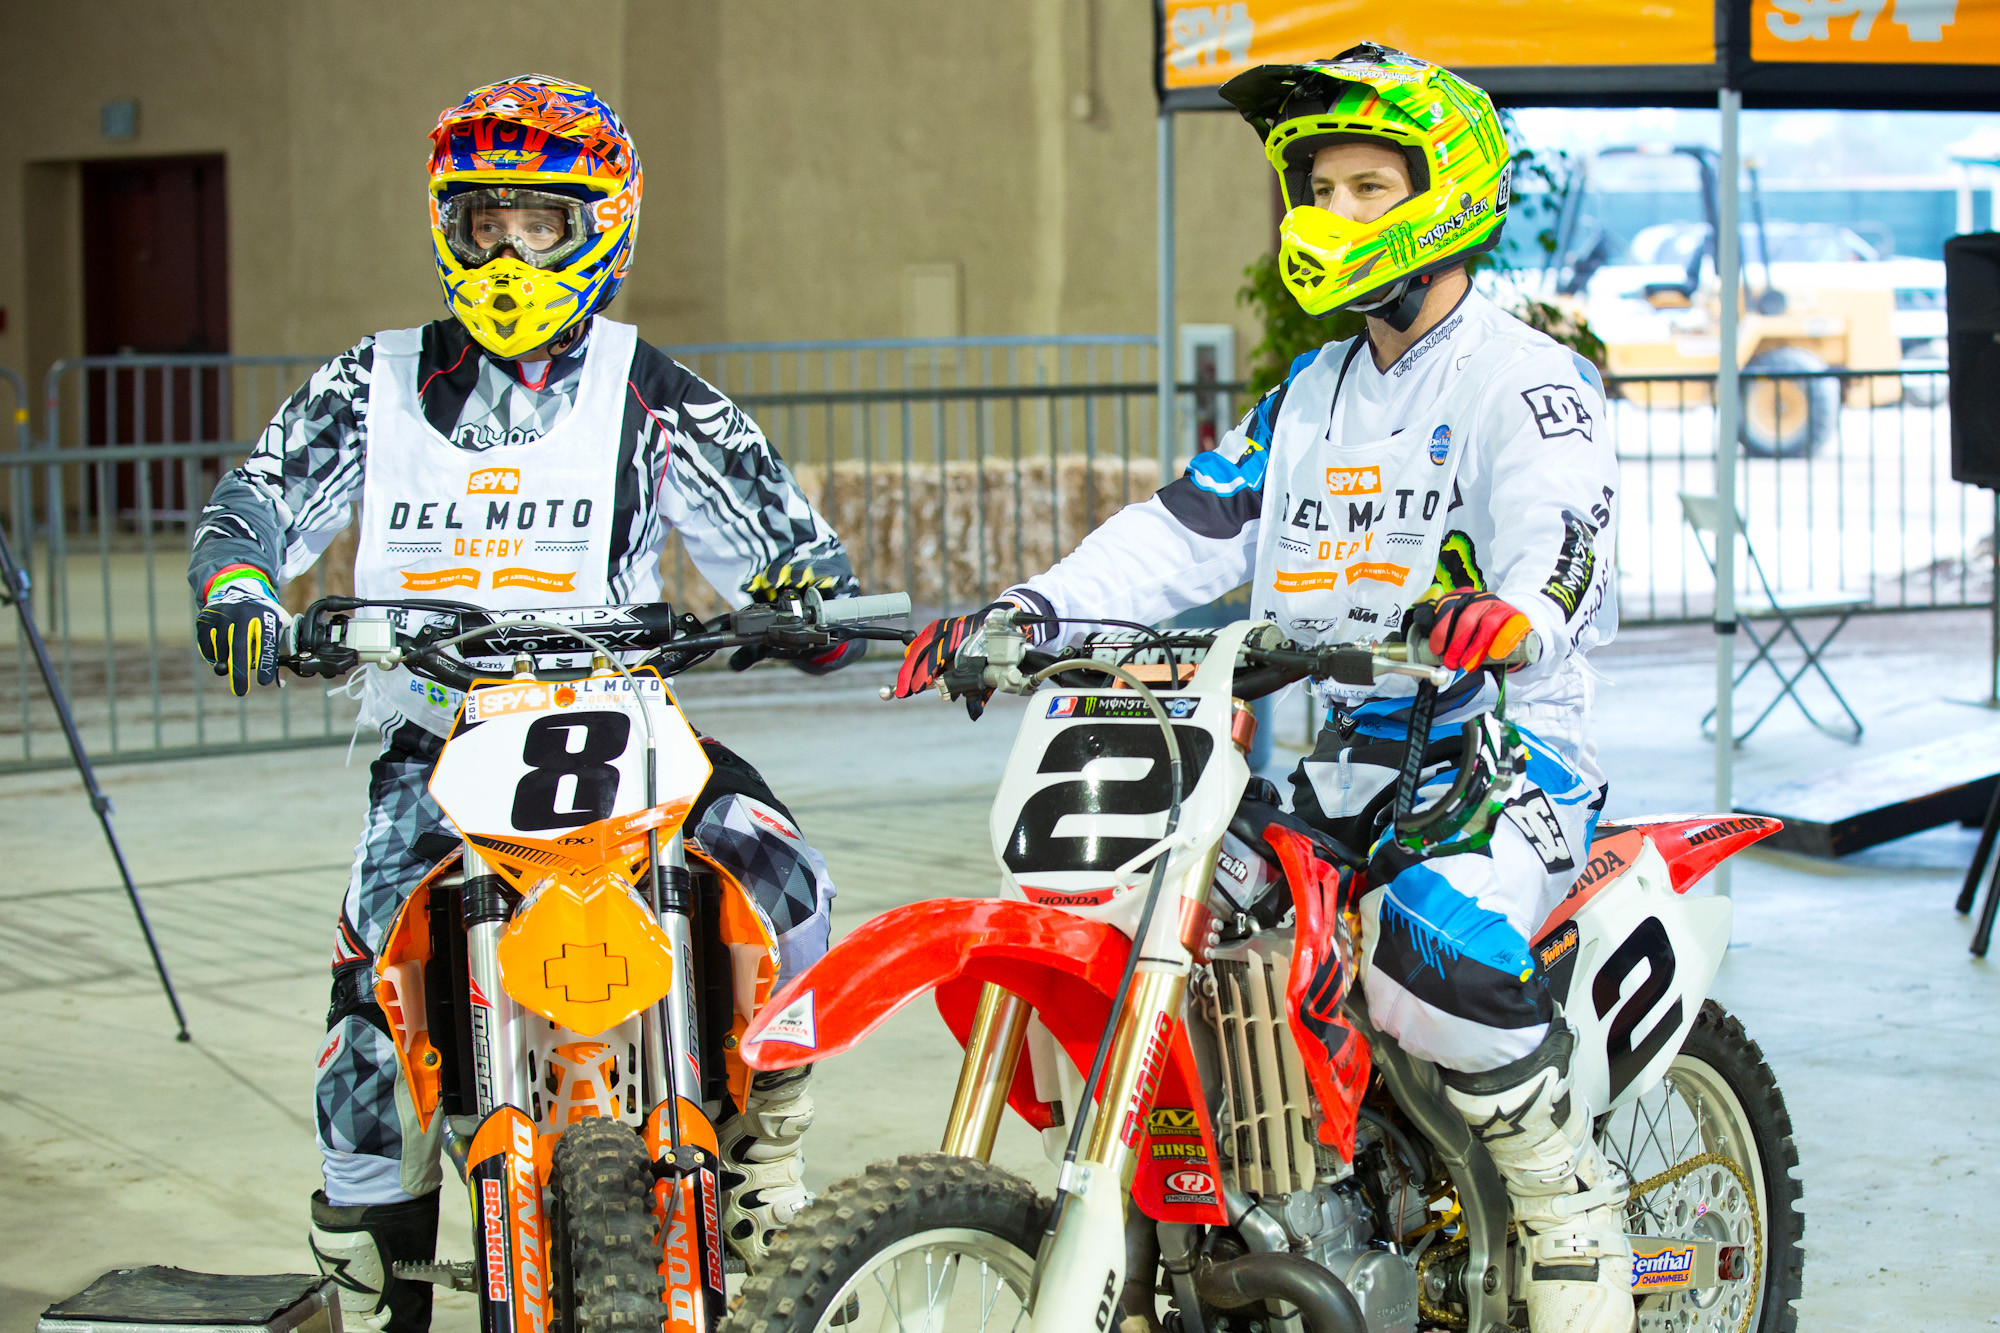 Racer X Films: Spy\'s Del Moto Derby